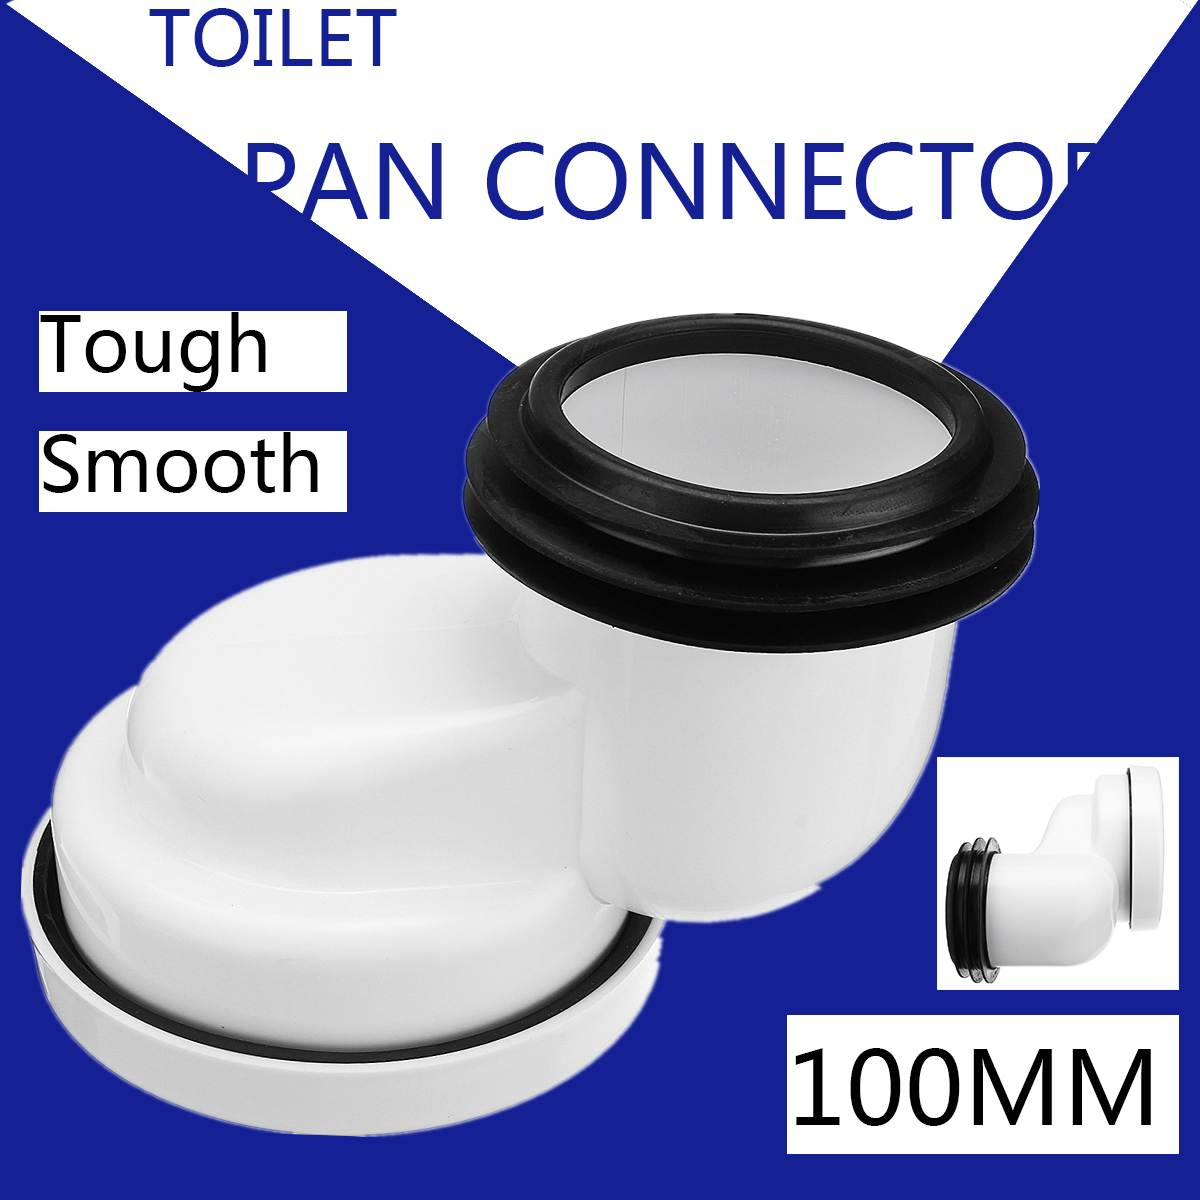 100mm PVC Offset Misaligned Toilet WC Waste Pan Connector Bowl Smooth Soil Pipe White PVC Bathroom Toilets Parts Accessories